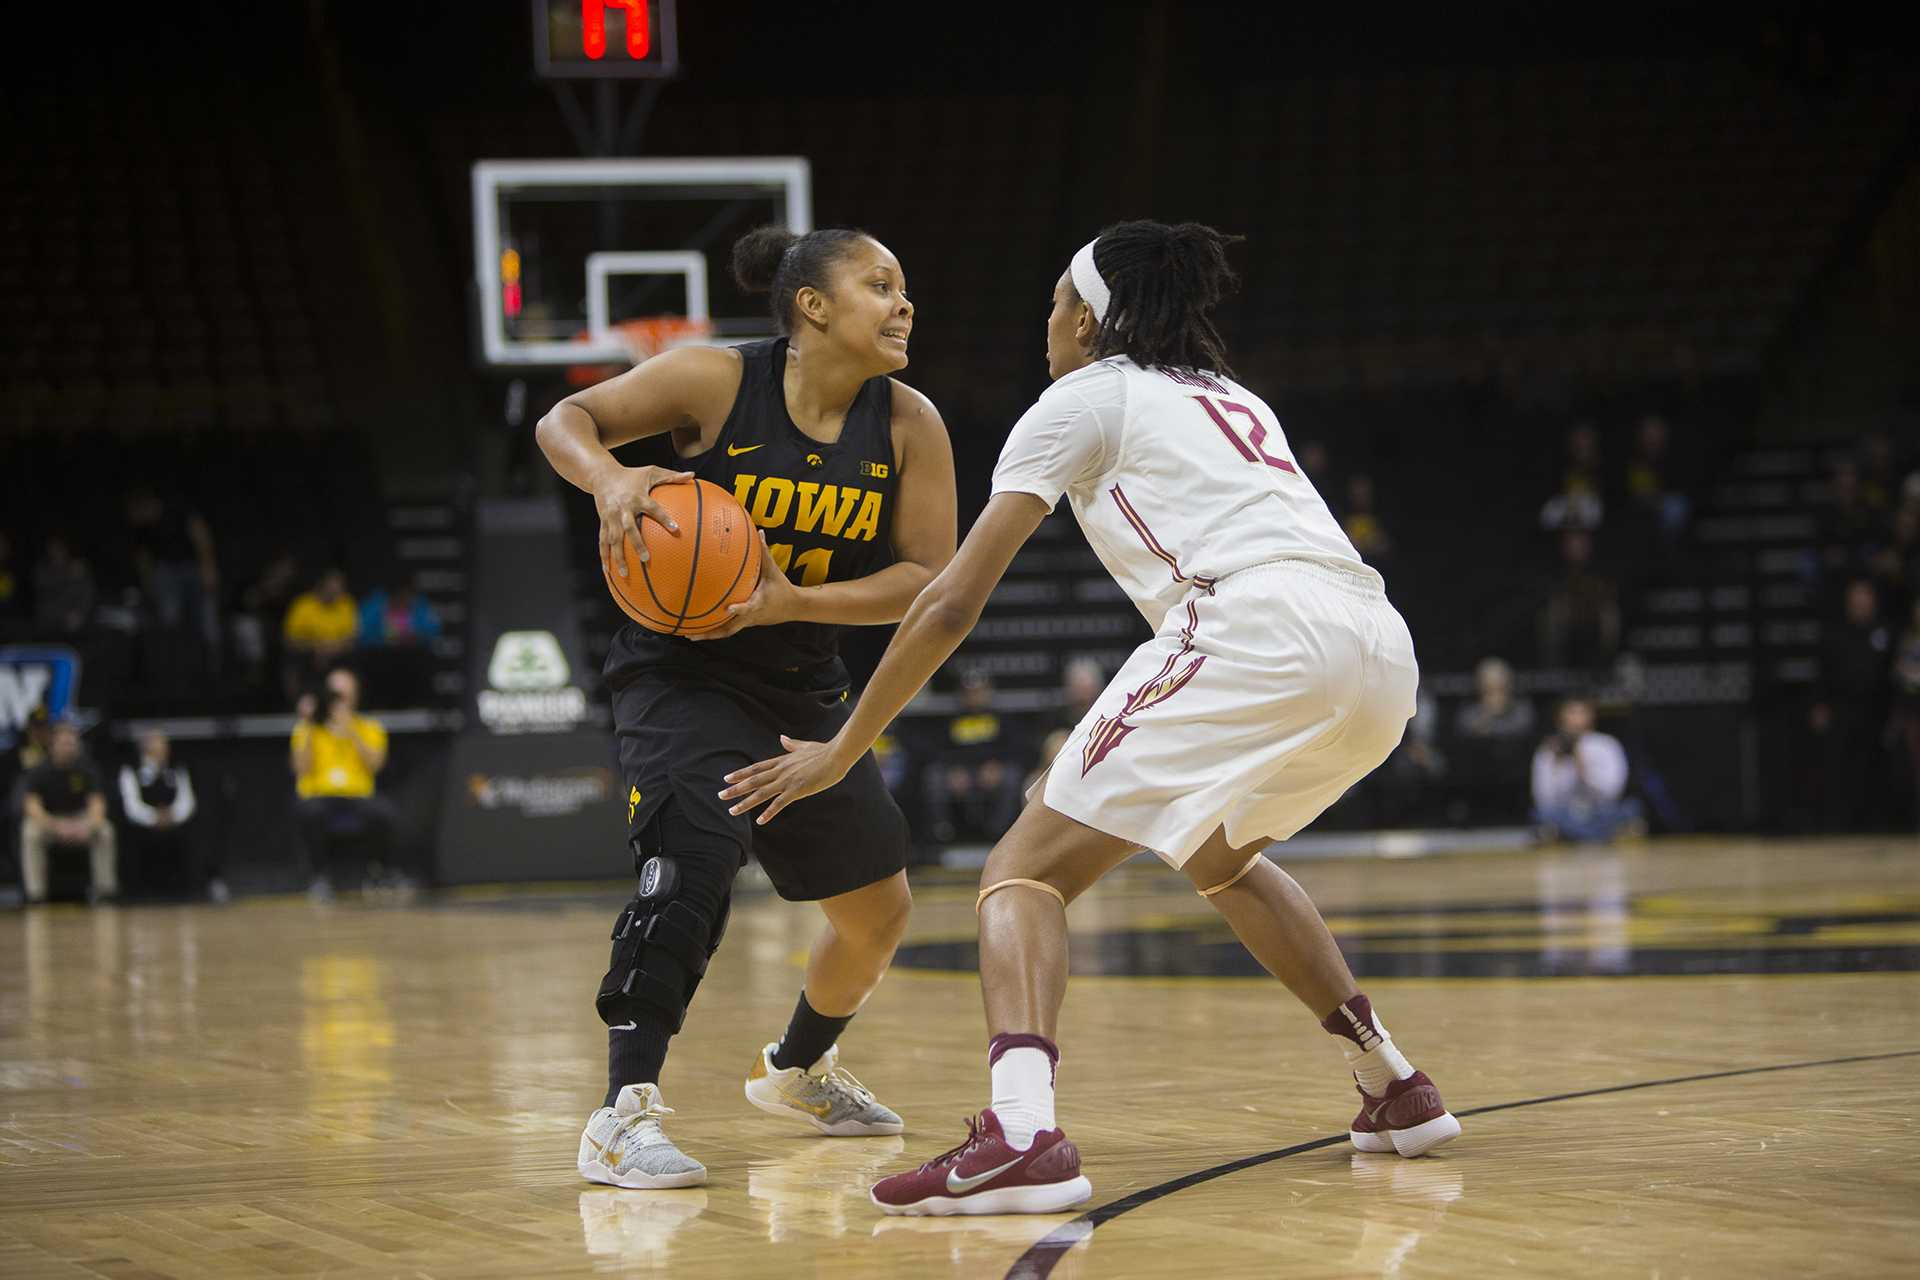 Iowa's Tania Davis guards the ball during the Iowa/Florida State Big Ten/ACC Challenge basketball game at Carver-Hawkeye Arena on Wednesday, Nov. 29, 2017.